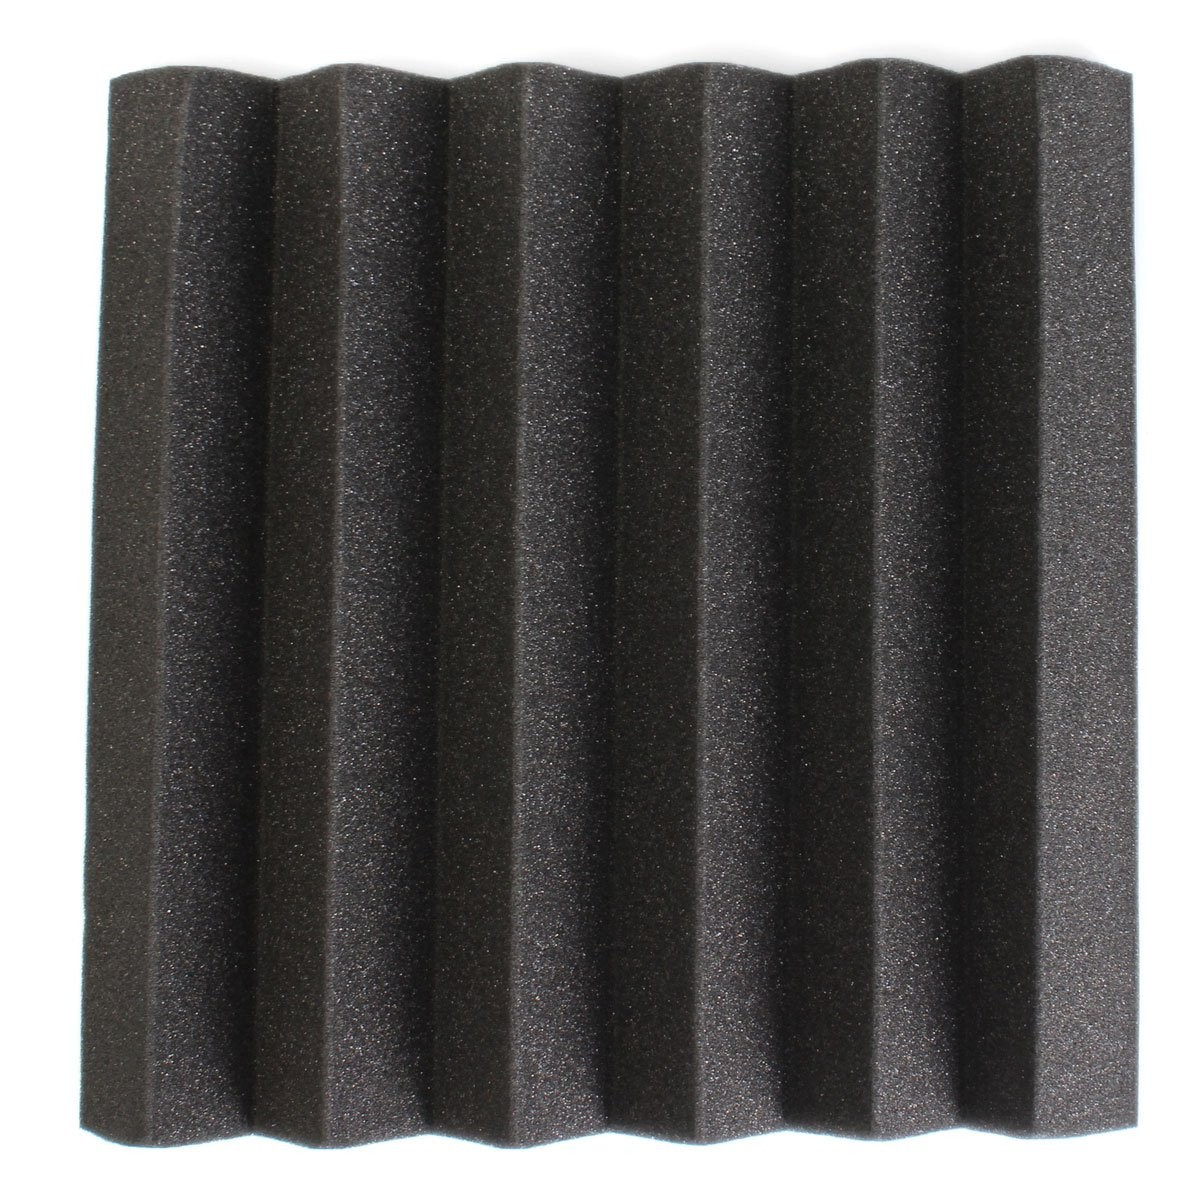 8Pcs 30x 30x 5cm Black Sound Treatment Studio Room Absorption Wedge Tiles Polyurethane Foam Acoustic Foam Soundproofing Foam australian gold hardcore black 30x 250 мл